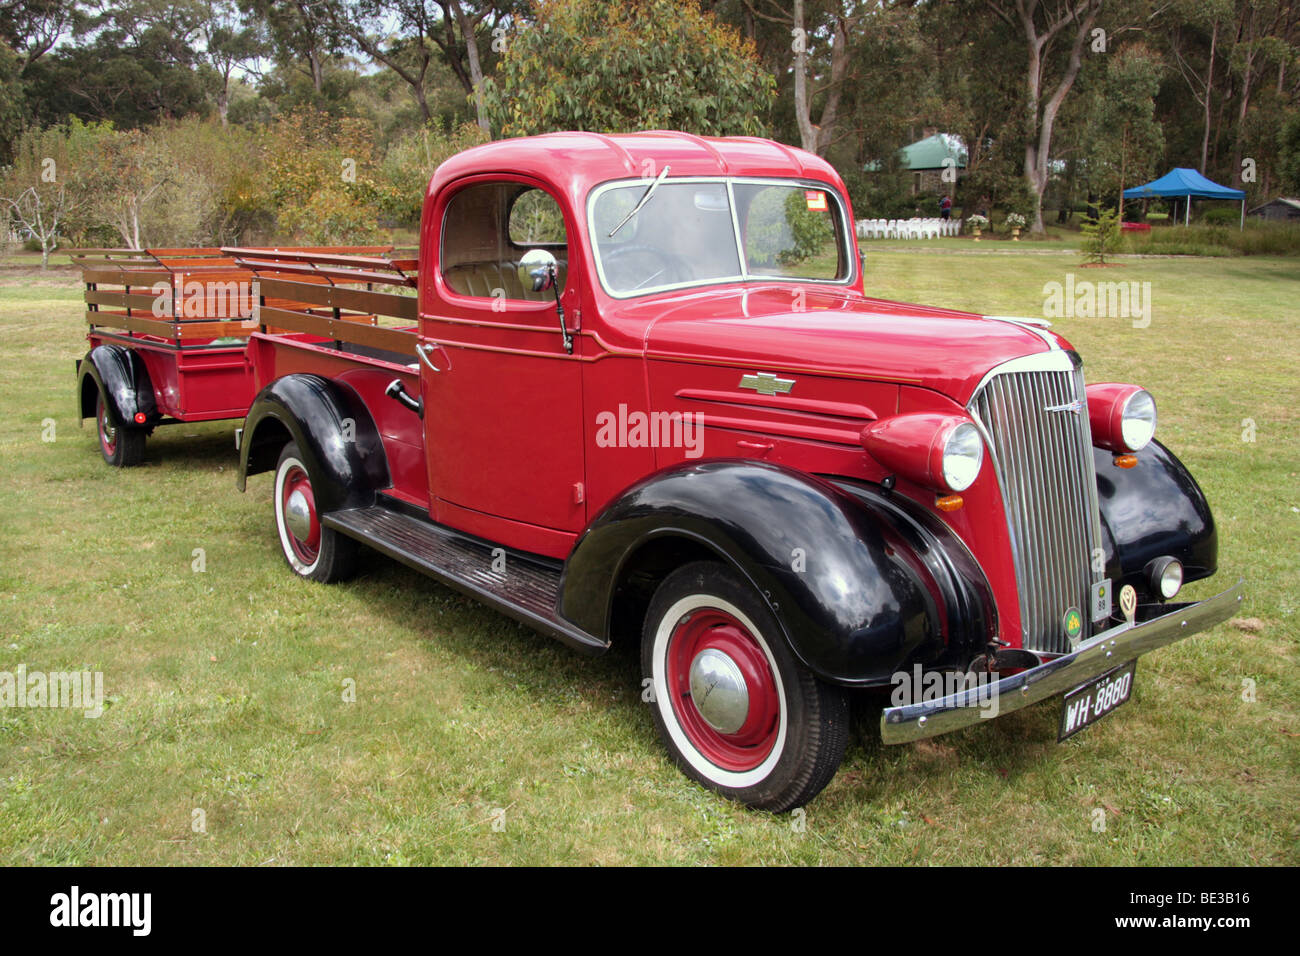 Old Chevy Truck Stock Photo, Royalty Free Image: 25890066 - Alamy